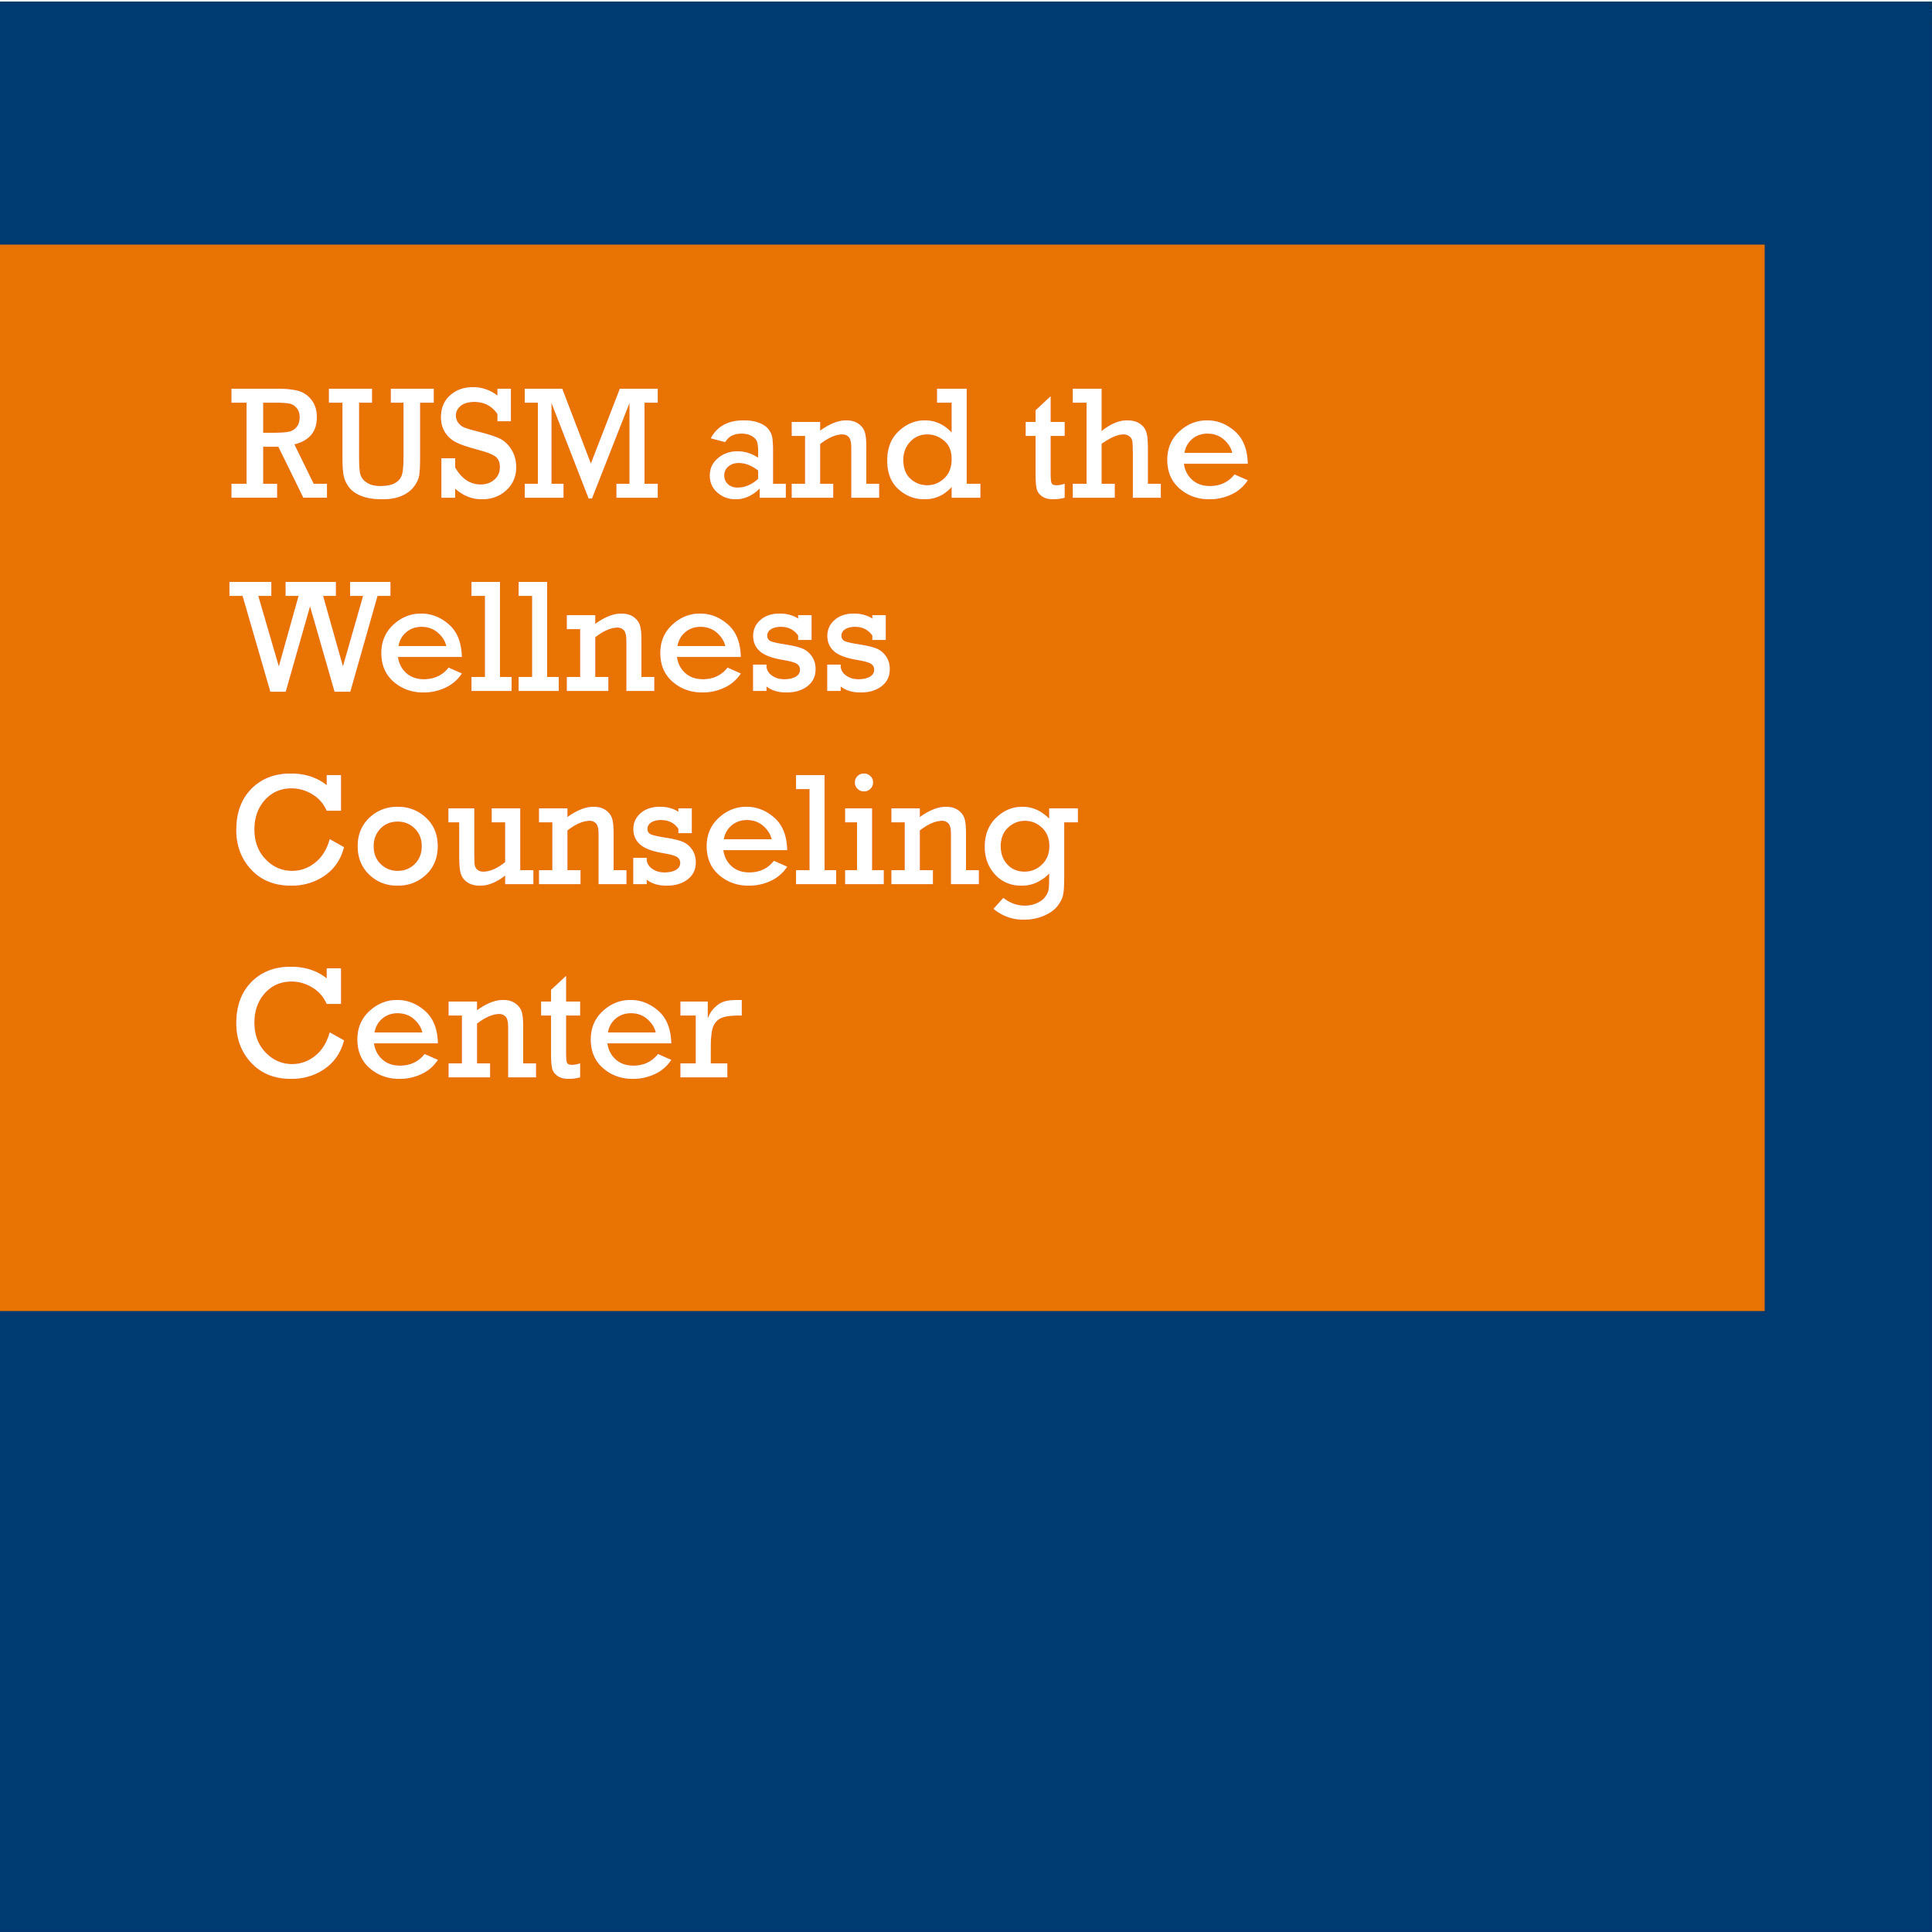 RUSM AND THE WELLNESS AND COUNSELING CENTER thumbnail